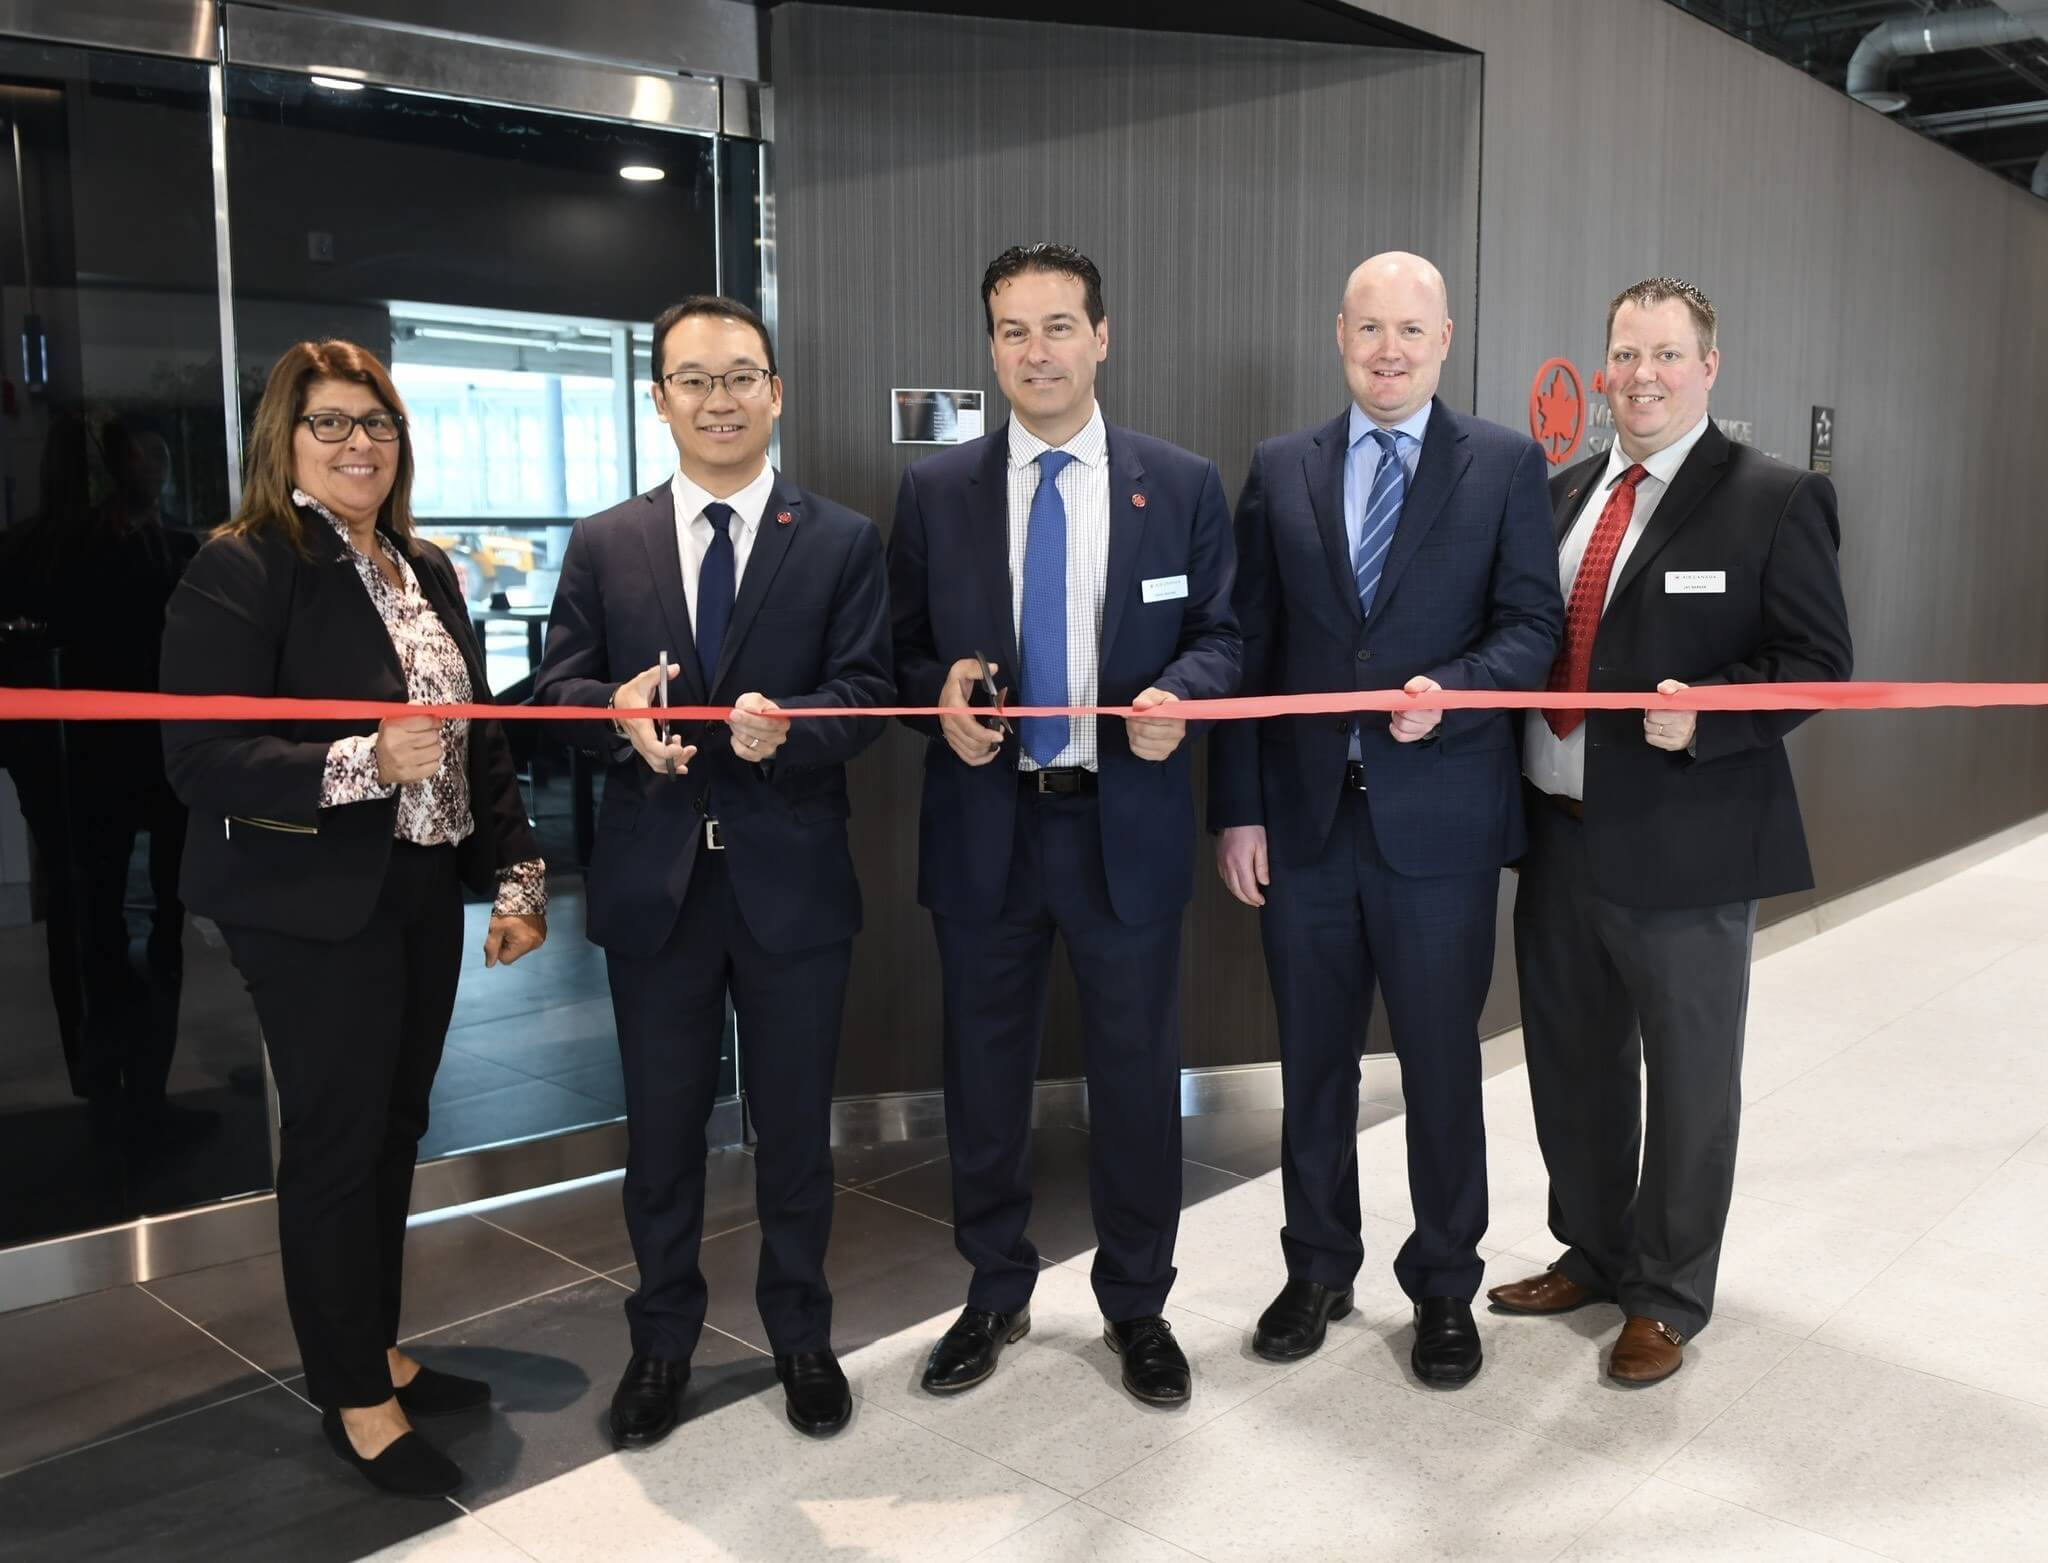 Air Canada unveils Maple Leaf Lounge Express at Toronto Pearson International Airport